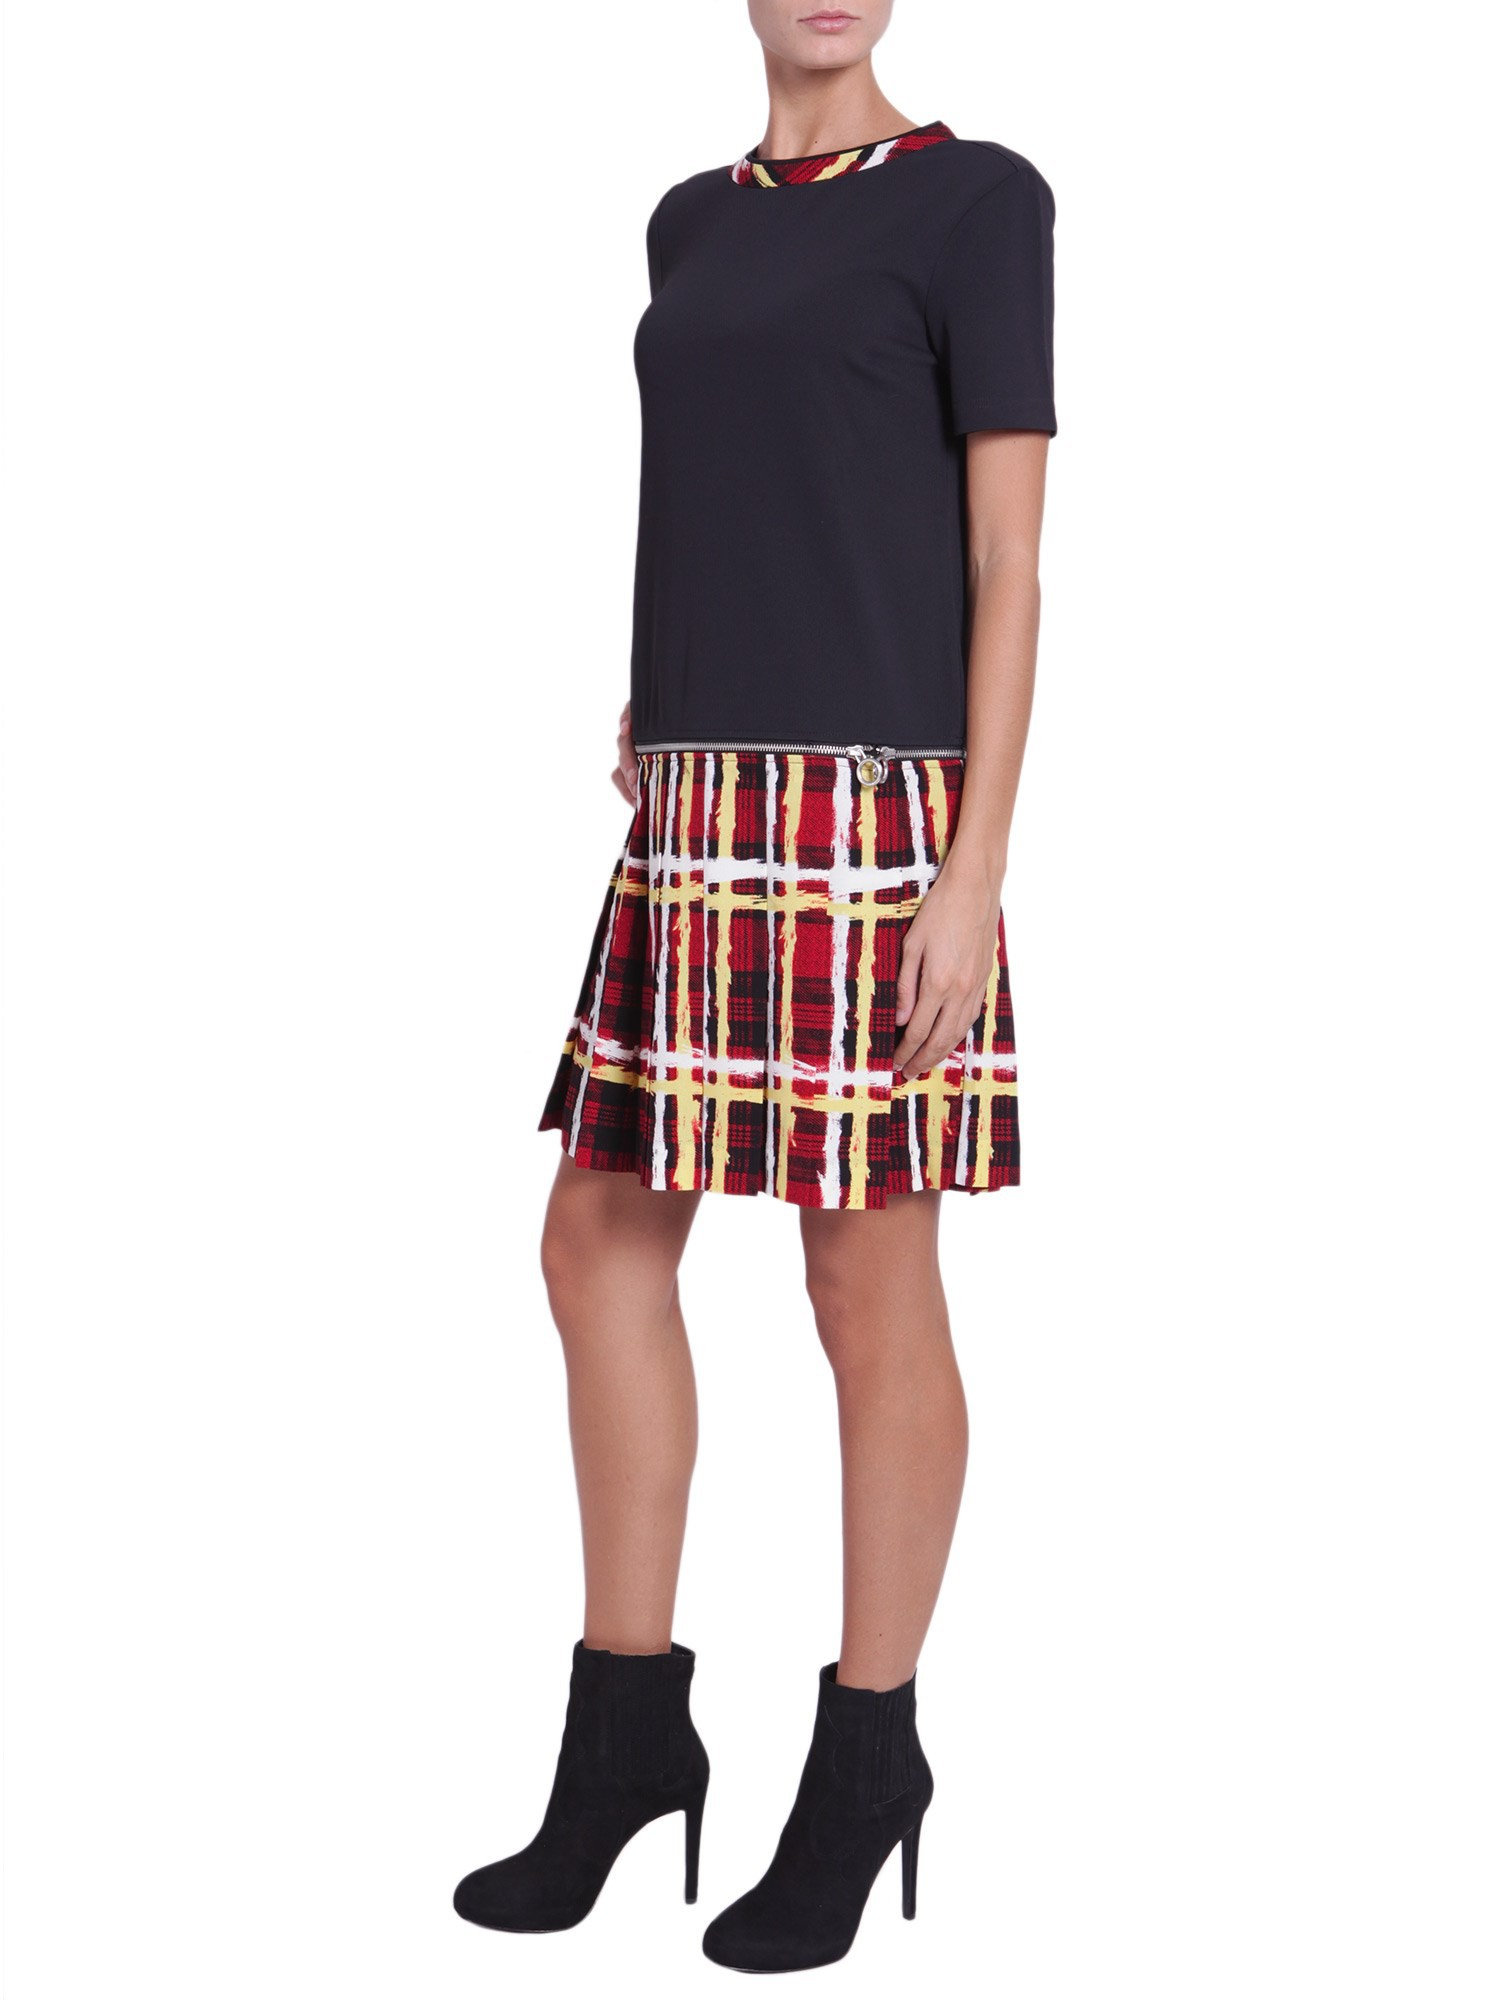 Plaid shirts and flannel shirts can be worn throughout the year. In the summer, roll up those sleeves and tuck into a pair of high waisted shorts. Or pair with a mini (Minus The) Leather skirt .